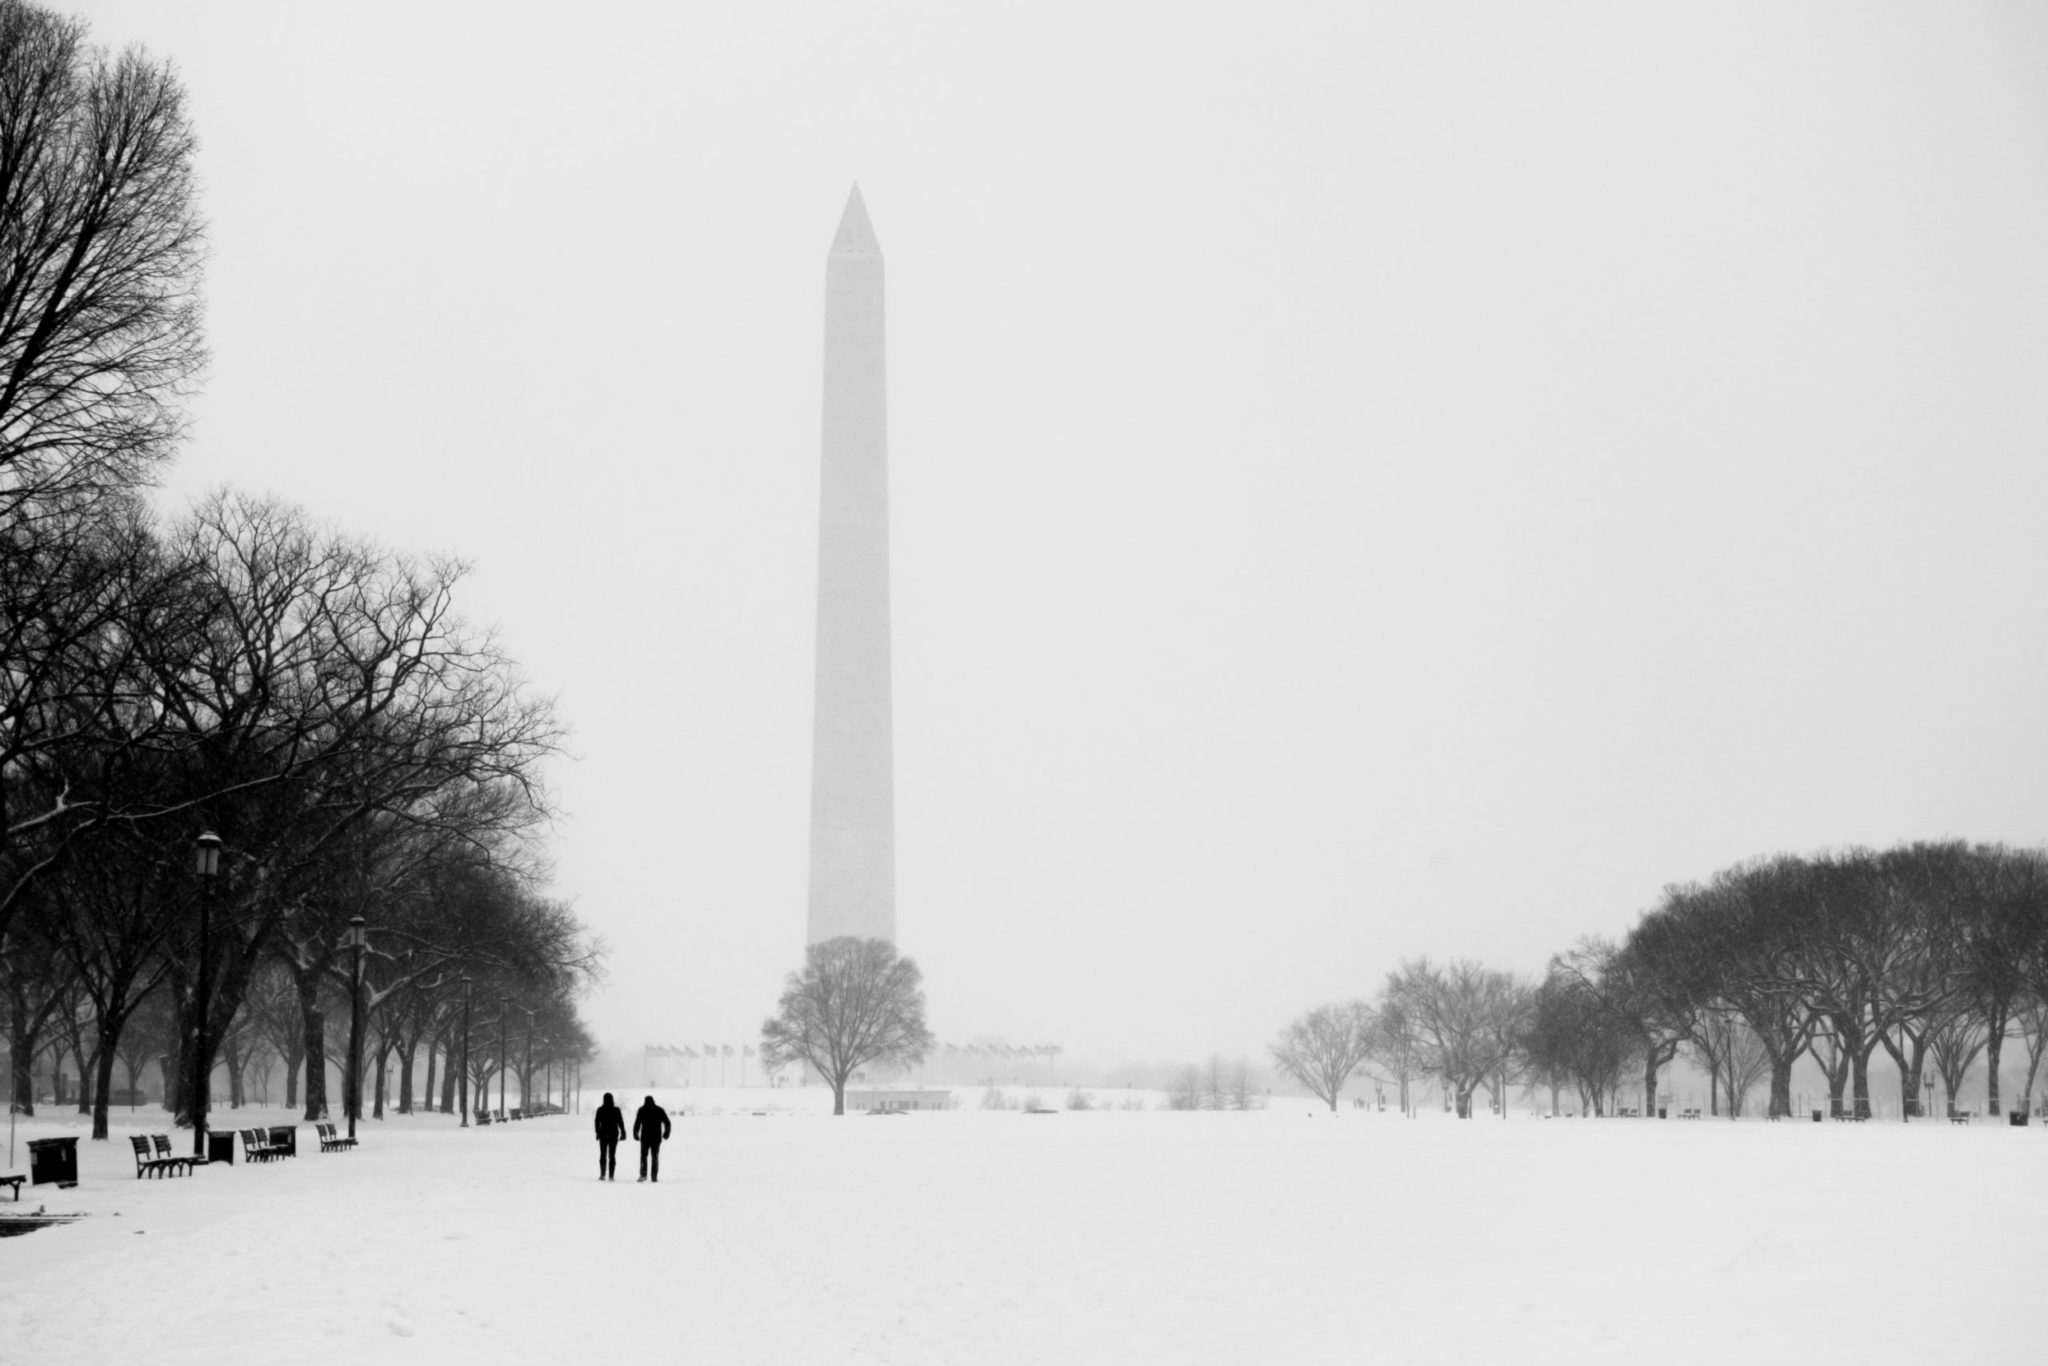 Washington, DC, snow. Photograph via iStock.